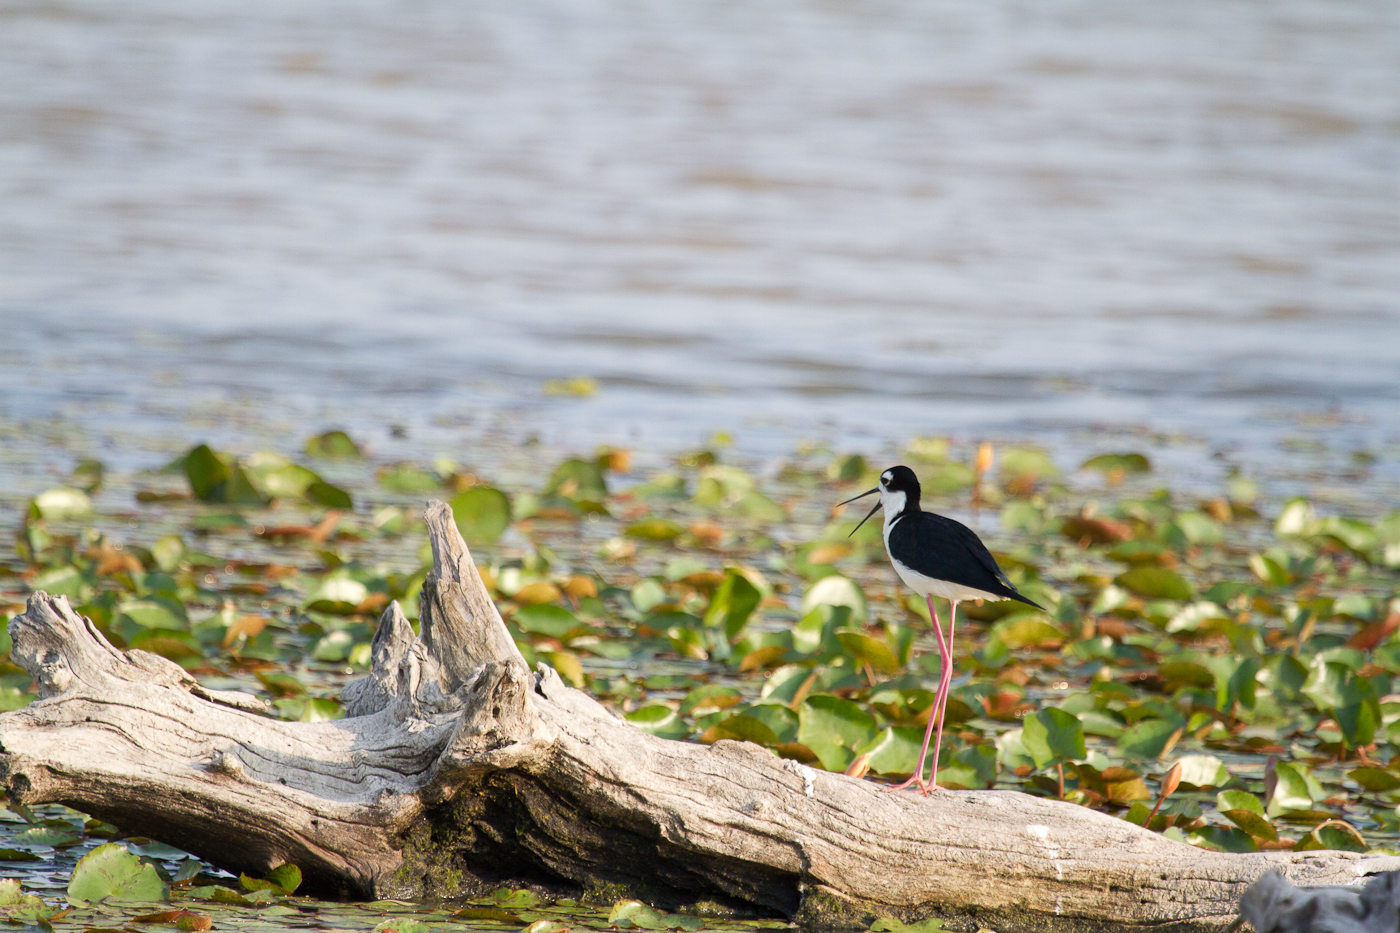 Black-Necked Stilt in front of the swamp lettuce.